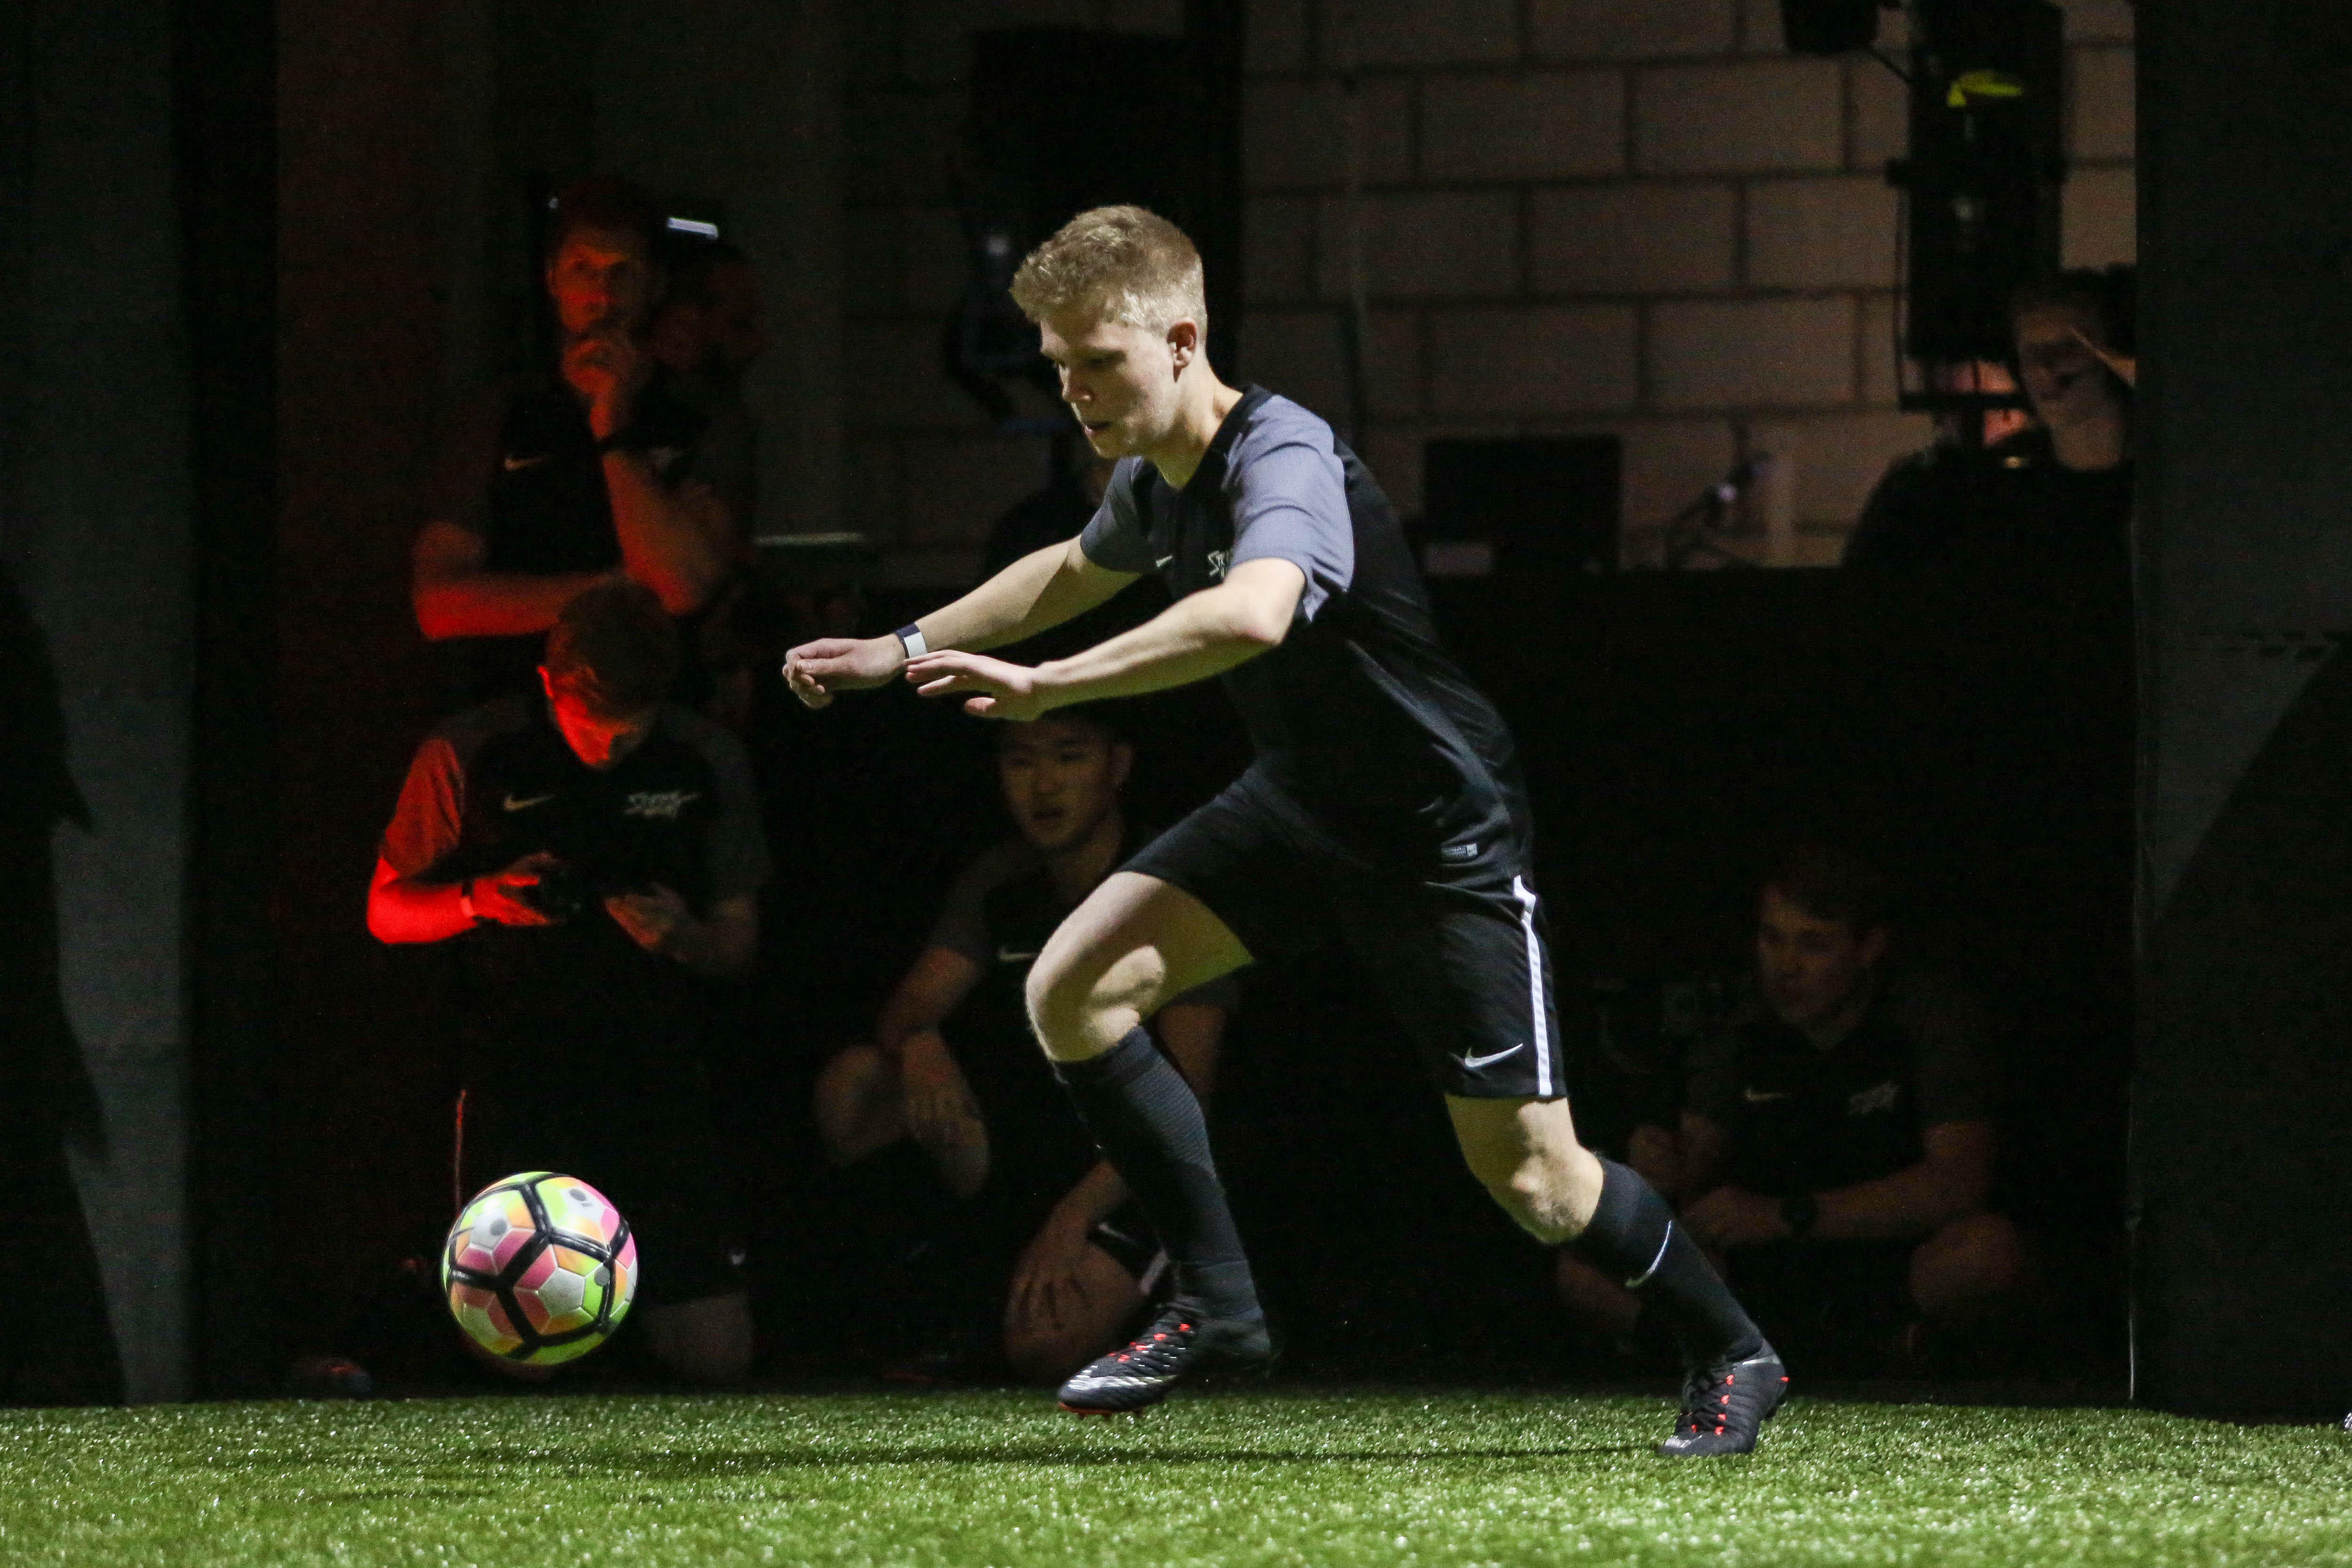 At the 'Nike Strike Night' event